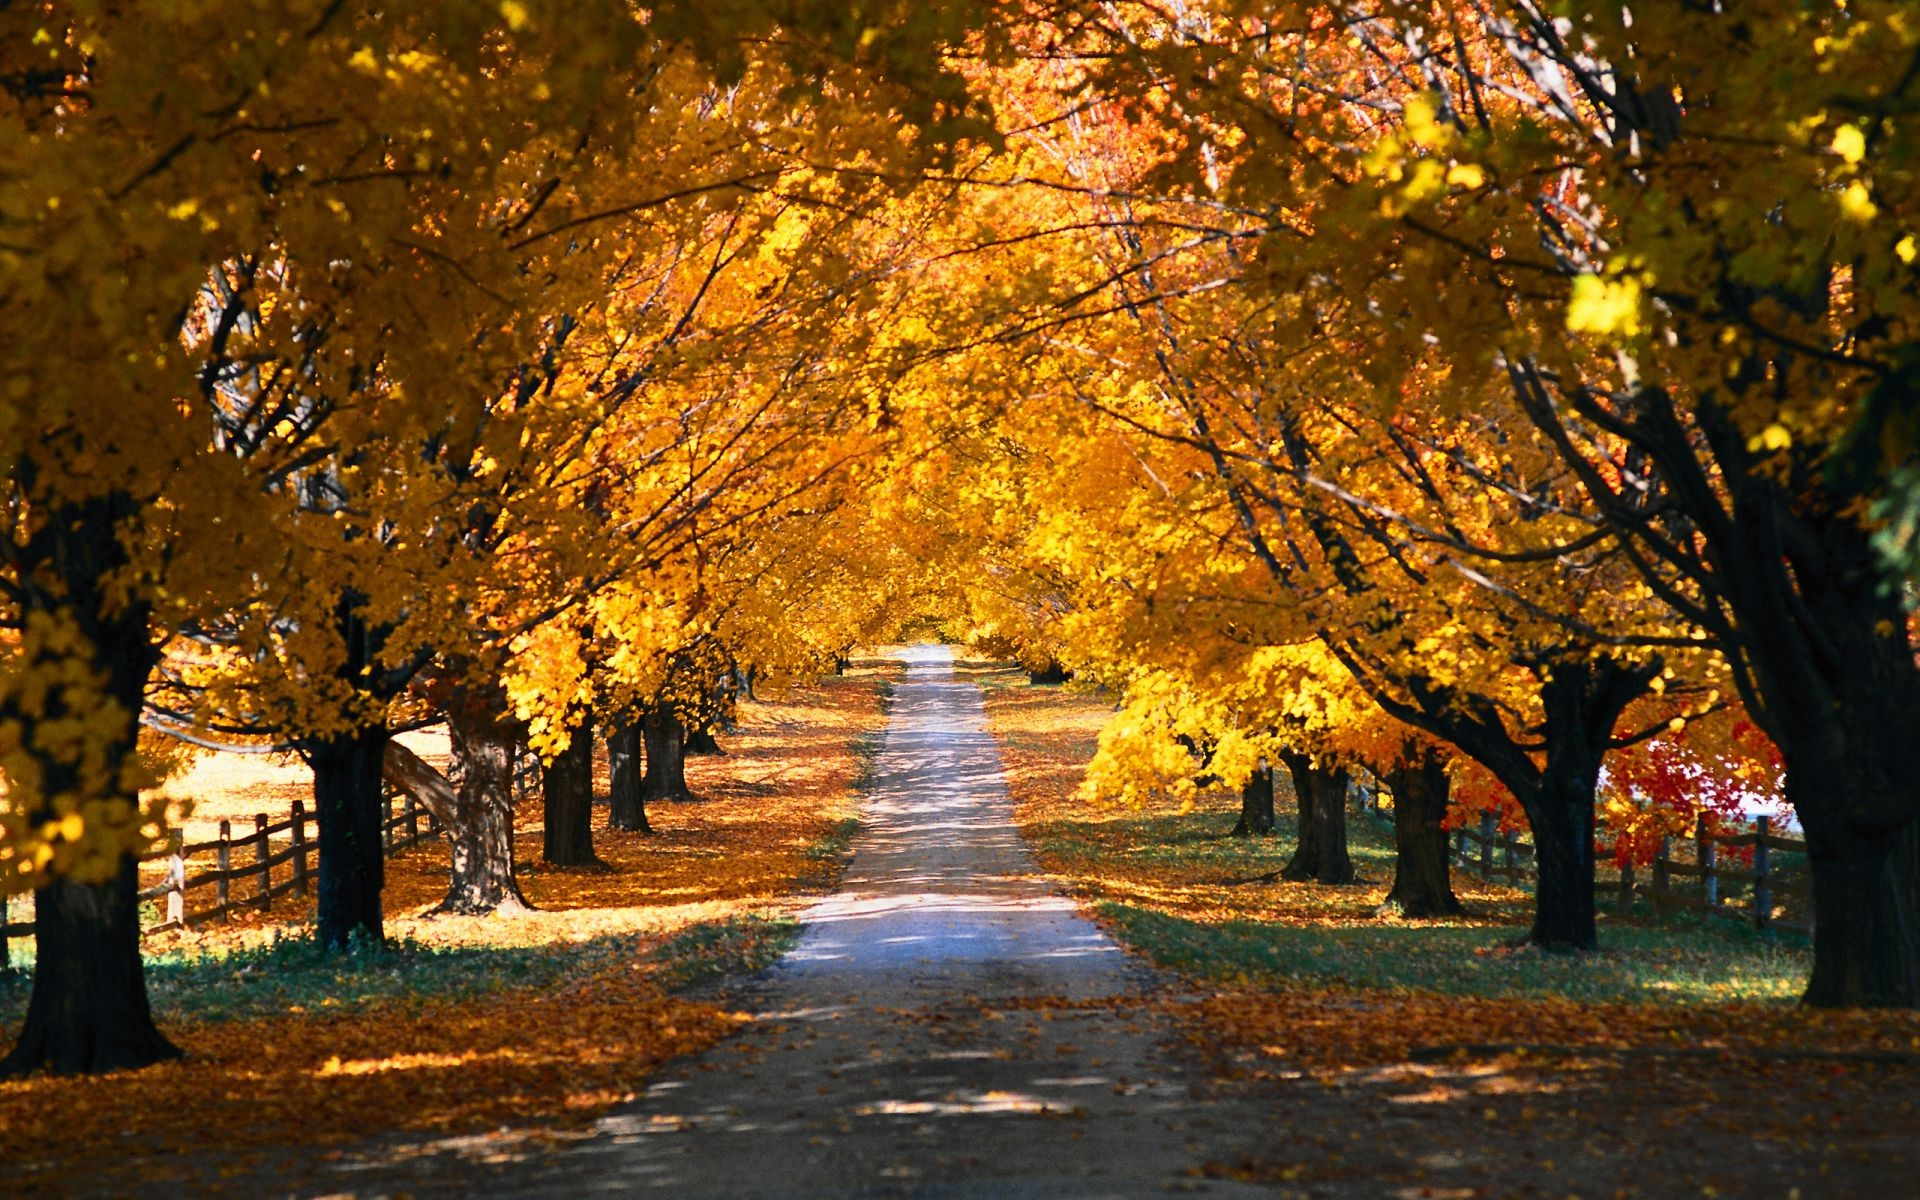 autumn fall tree leaf landscape road park guidance alley wood scenic maple branch avenue gold season dawn footpath outdoors nature